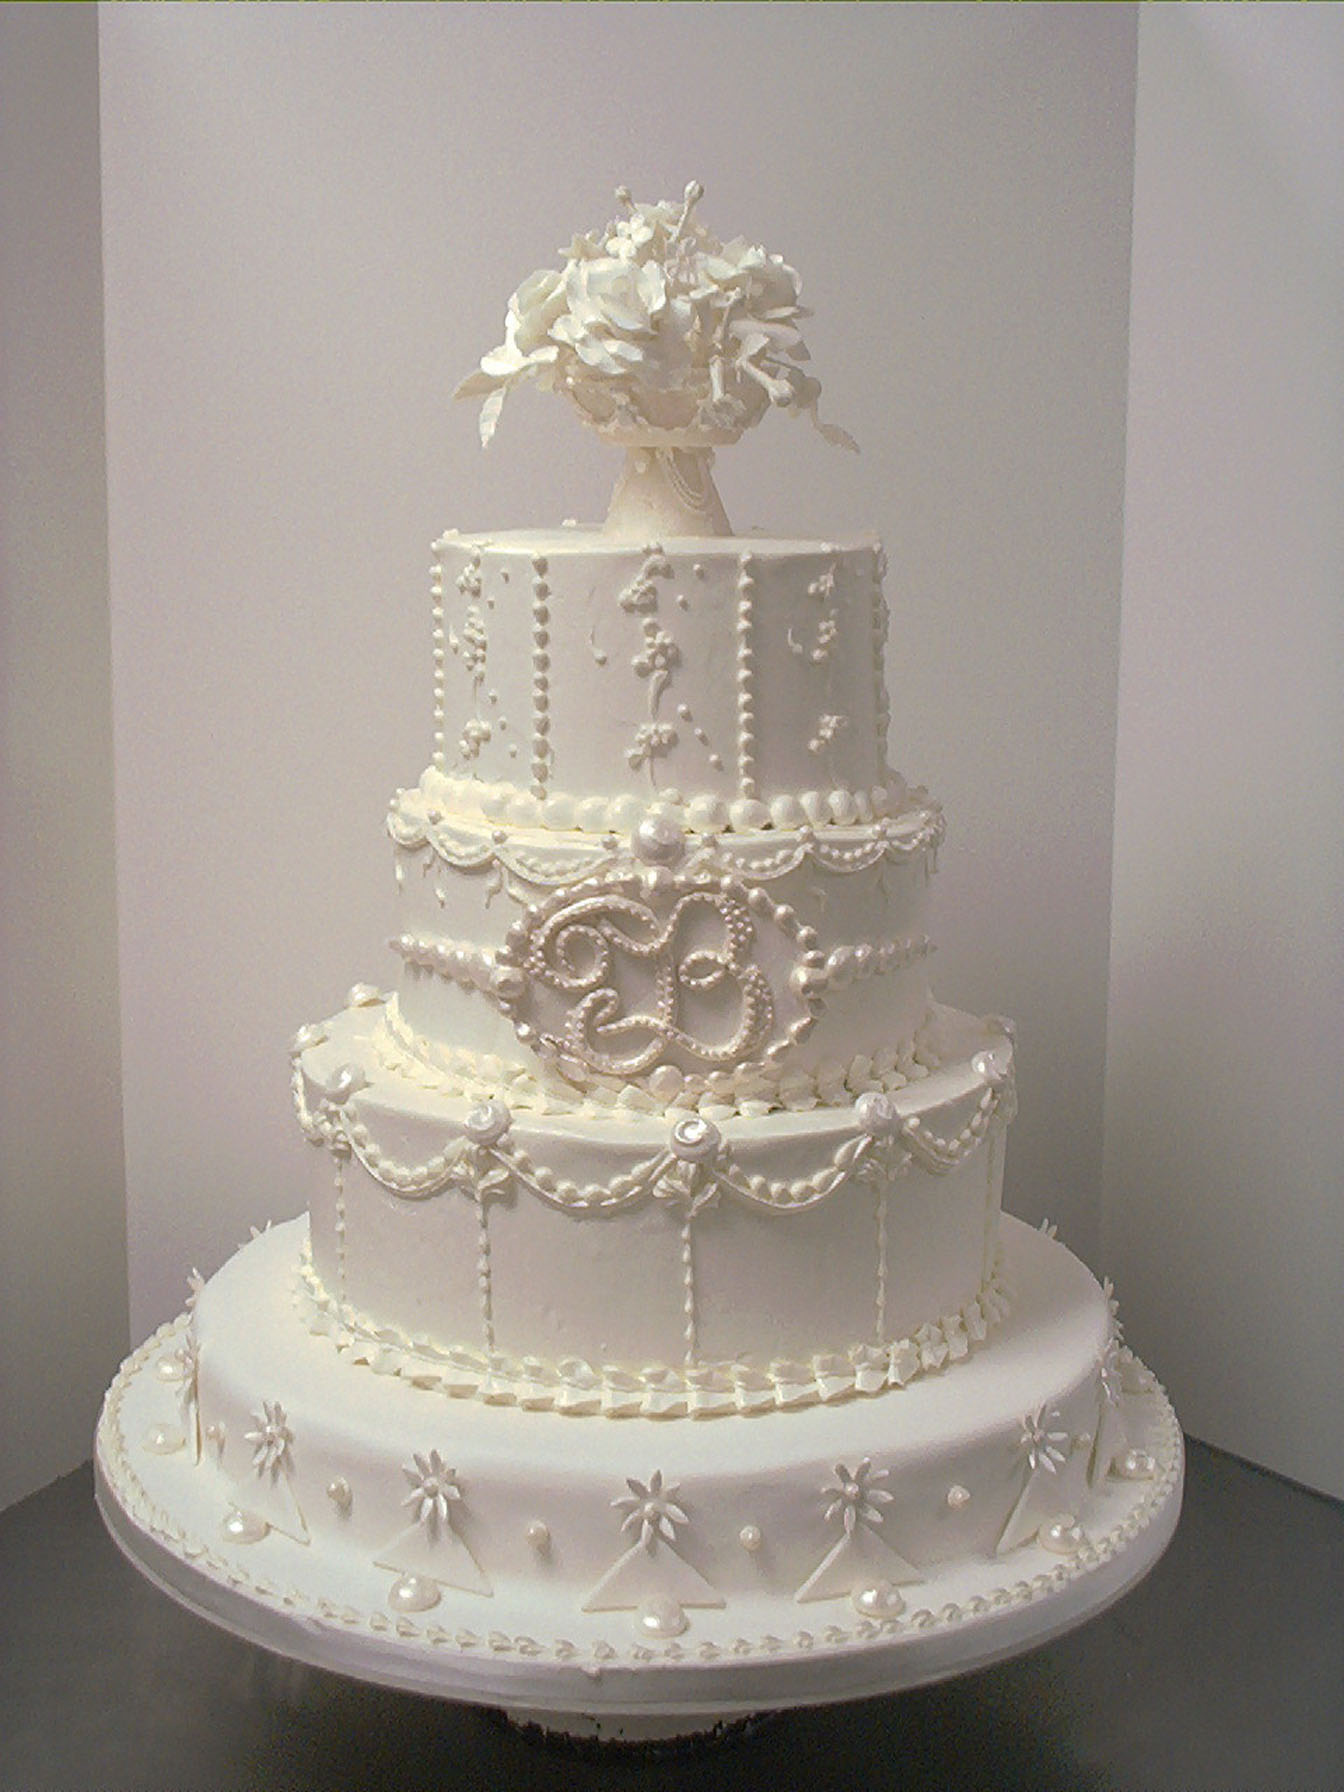 10 Beautiful Wedding Cakes We Love